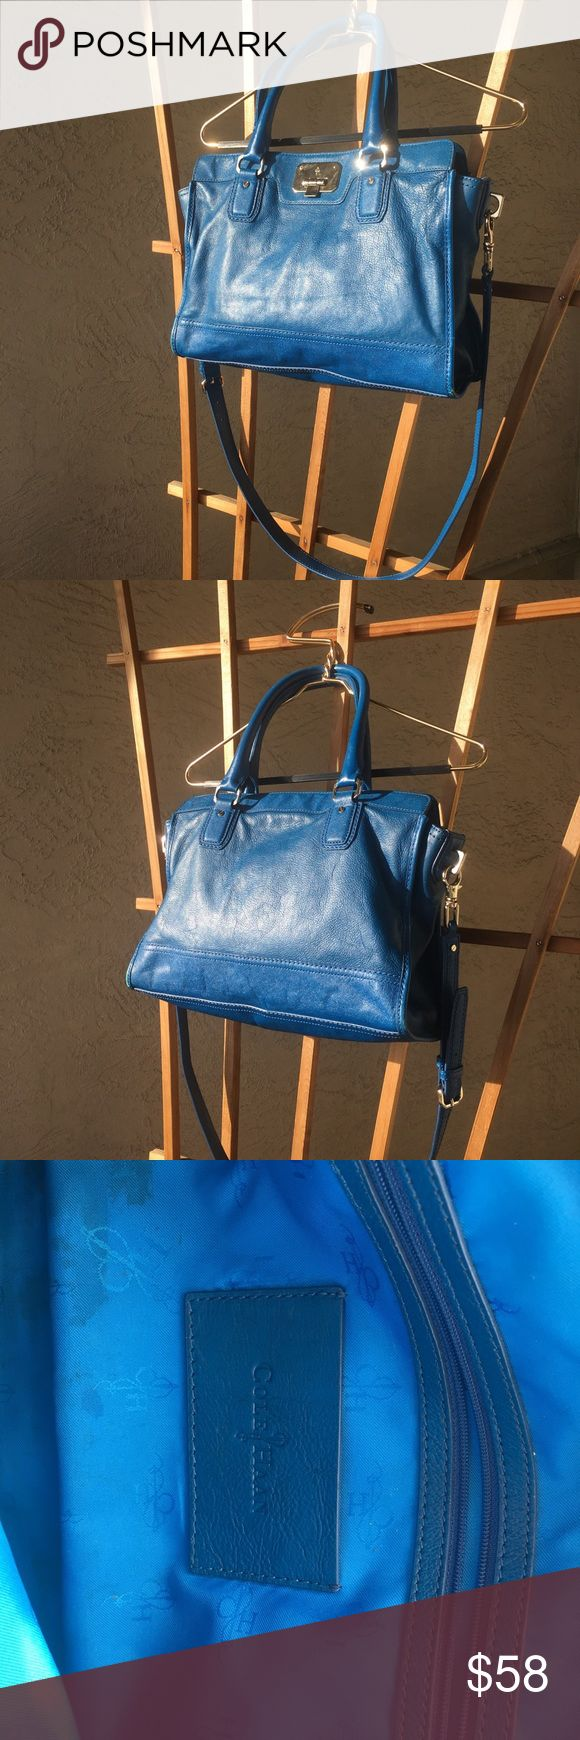 Cole haan royal blue shoulder work bag Bright blue purse, can be used as a shoulder bag or held by its short straps as a tote. Would be great as a briefcase for all you hardworking babes or just as a fun pop to a neutral outfit.  There is a bit of a stain on the inside which is only visible if opened and slight wear on the leather also on inside top bit. Both noted in picture. Otherwise outside looks great and is in good condition. Cole Haan Bags Shoulder Bags